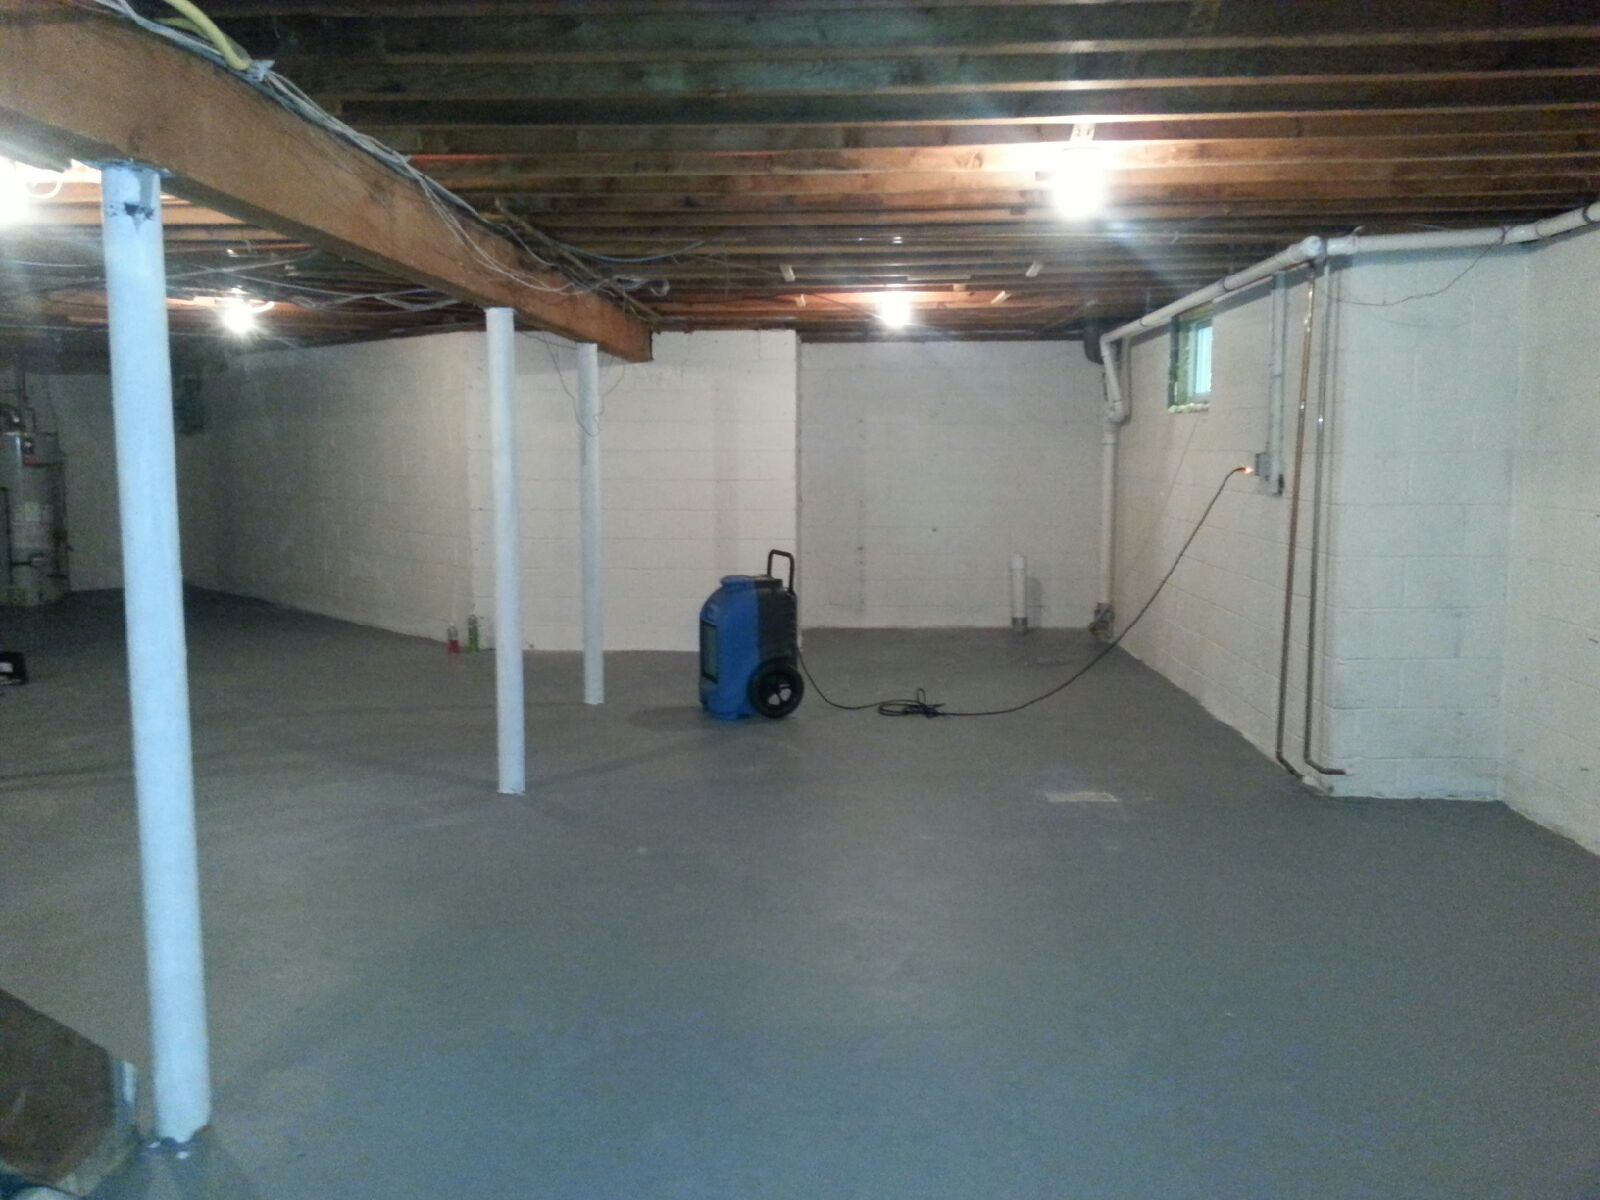 Basement Water Damage and Mold Removal in Colts Neck NJ